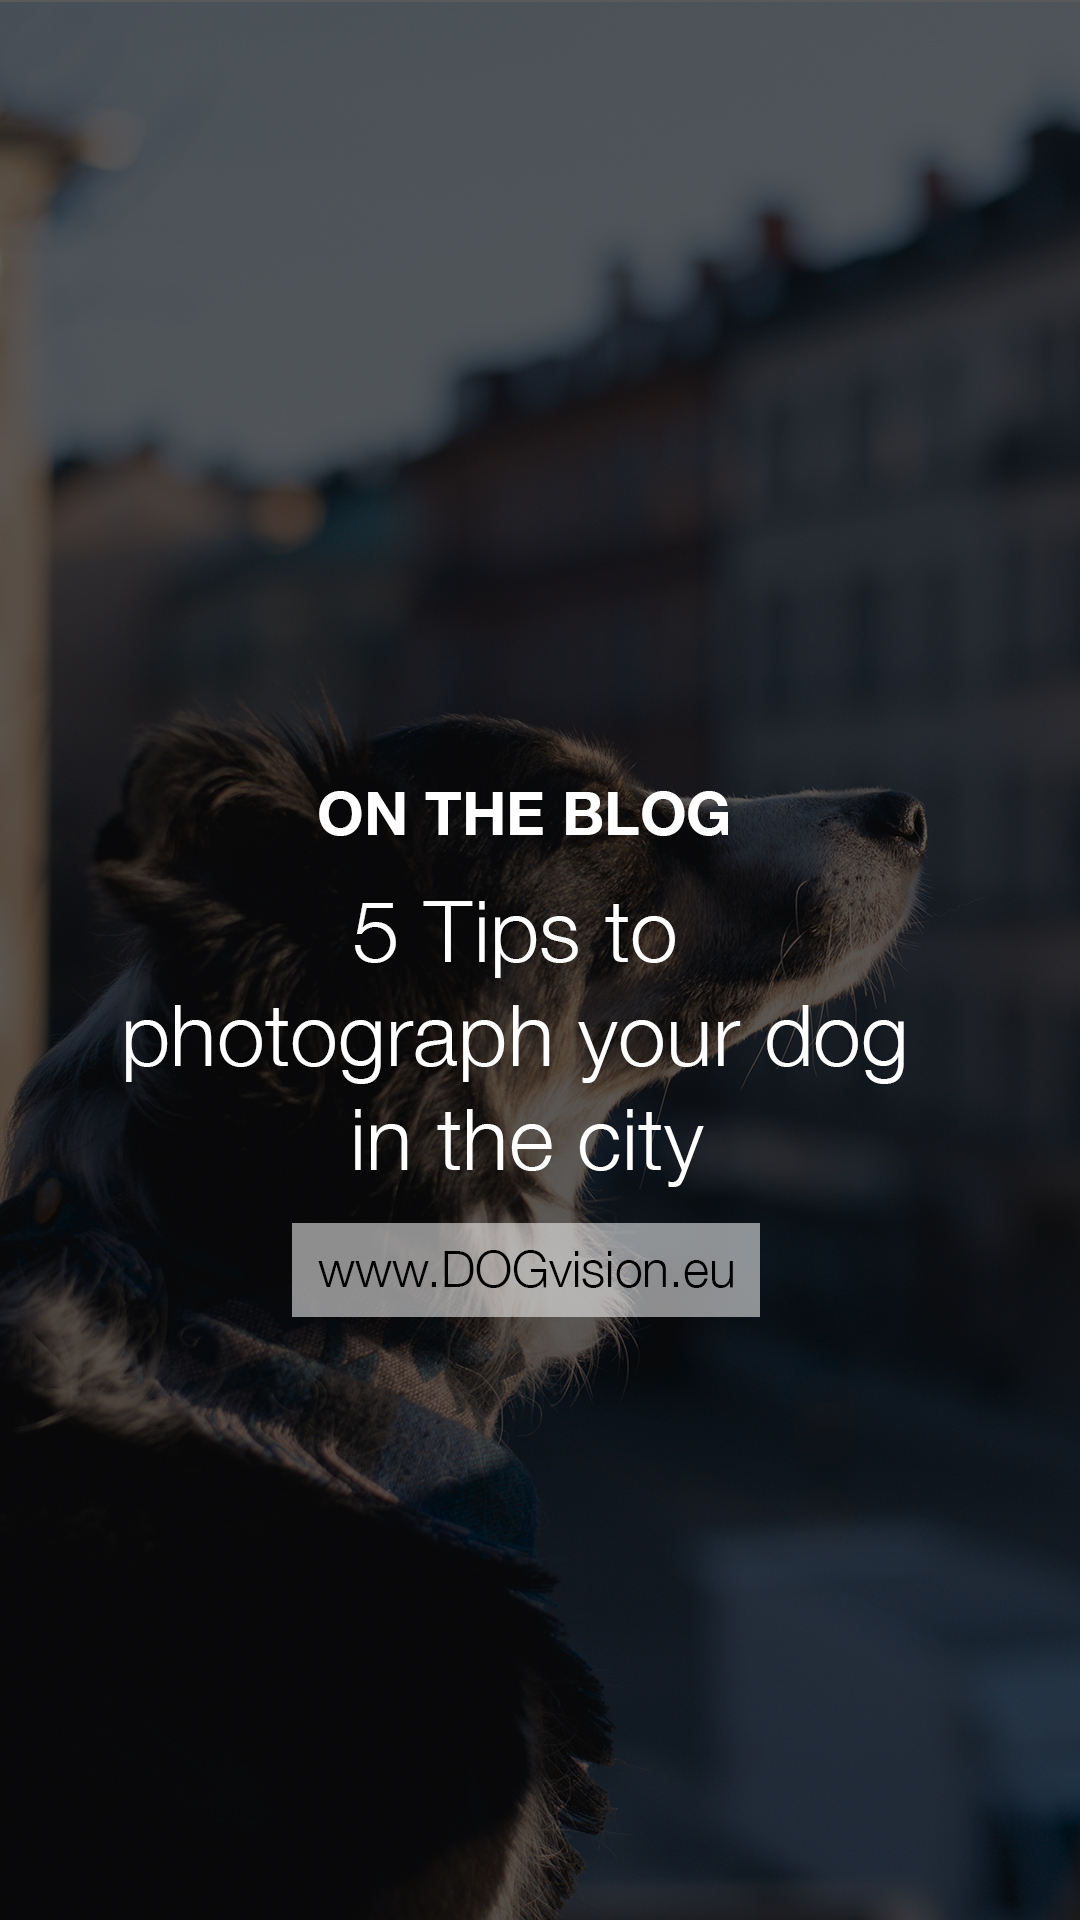 5 tips on photographing your dogs in the city, dog photography, Sweden, Dalarna, creative dog photography, www.DOGvision.eu